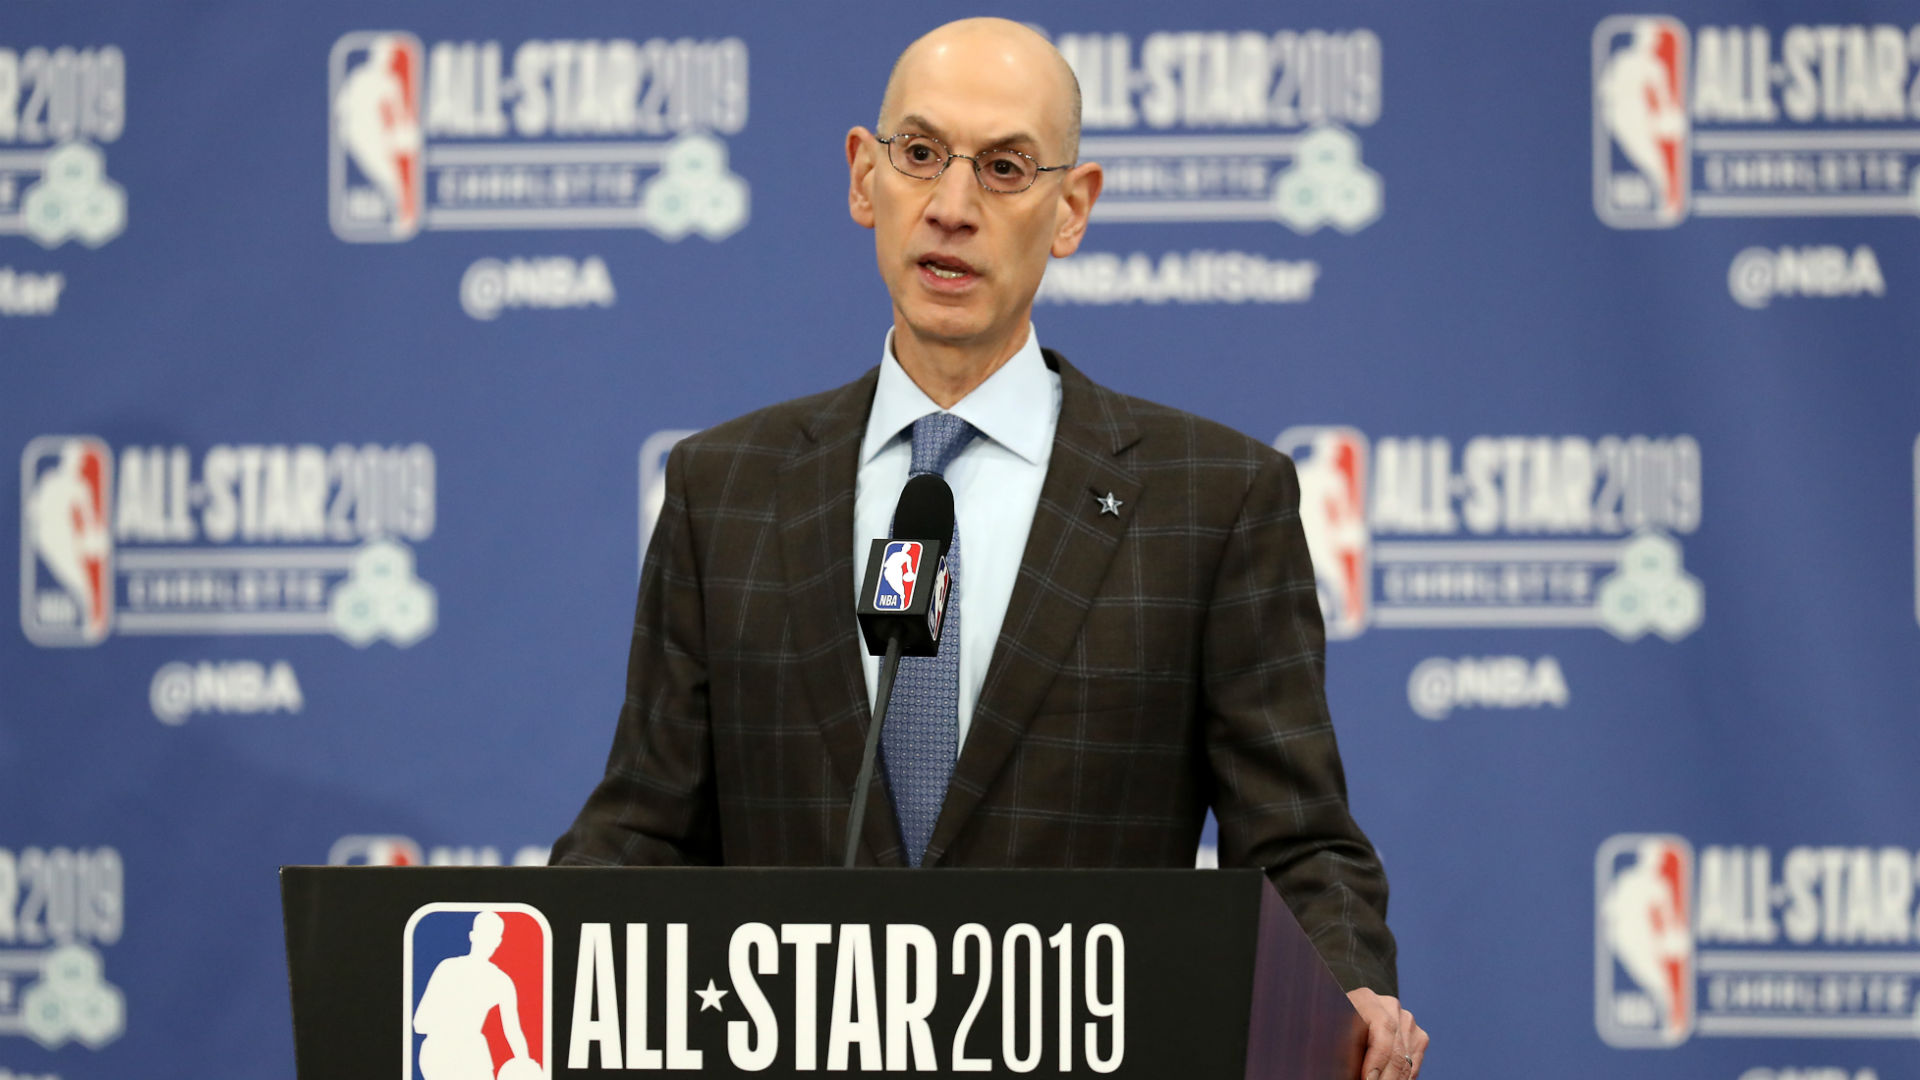 NBA Draft order 2019: Complete list of picks for Rounds 1 and 2